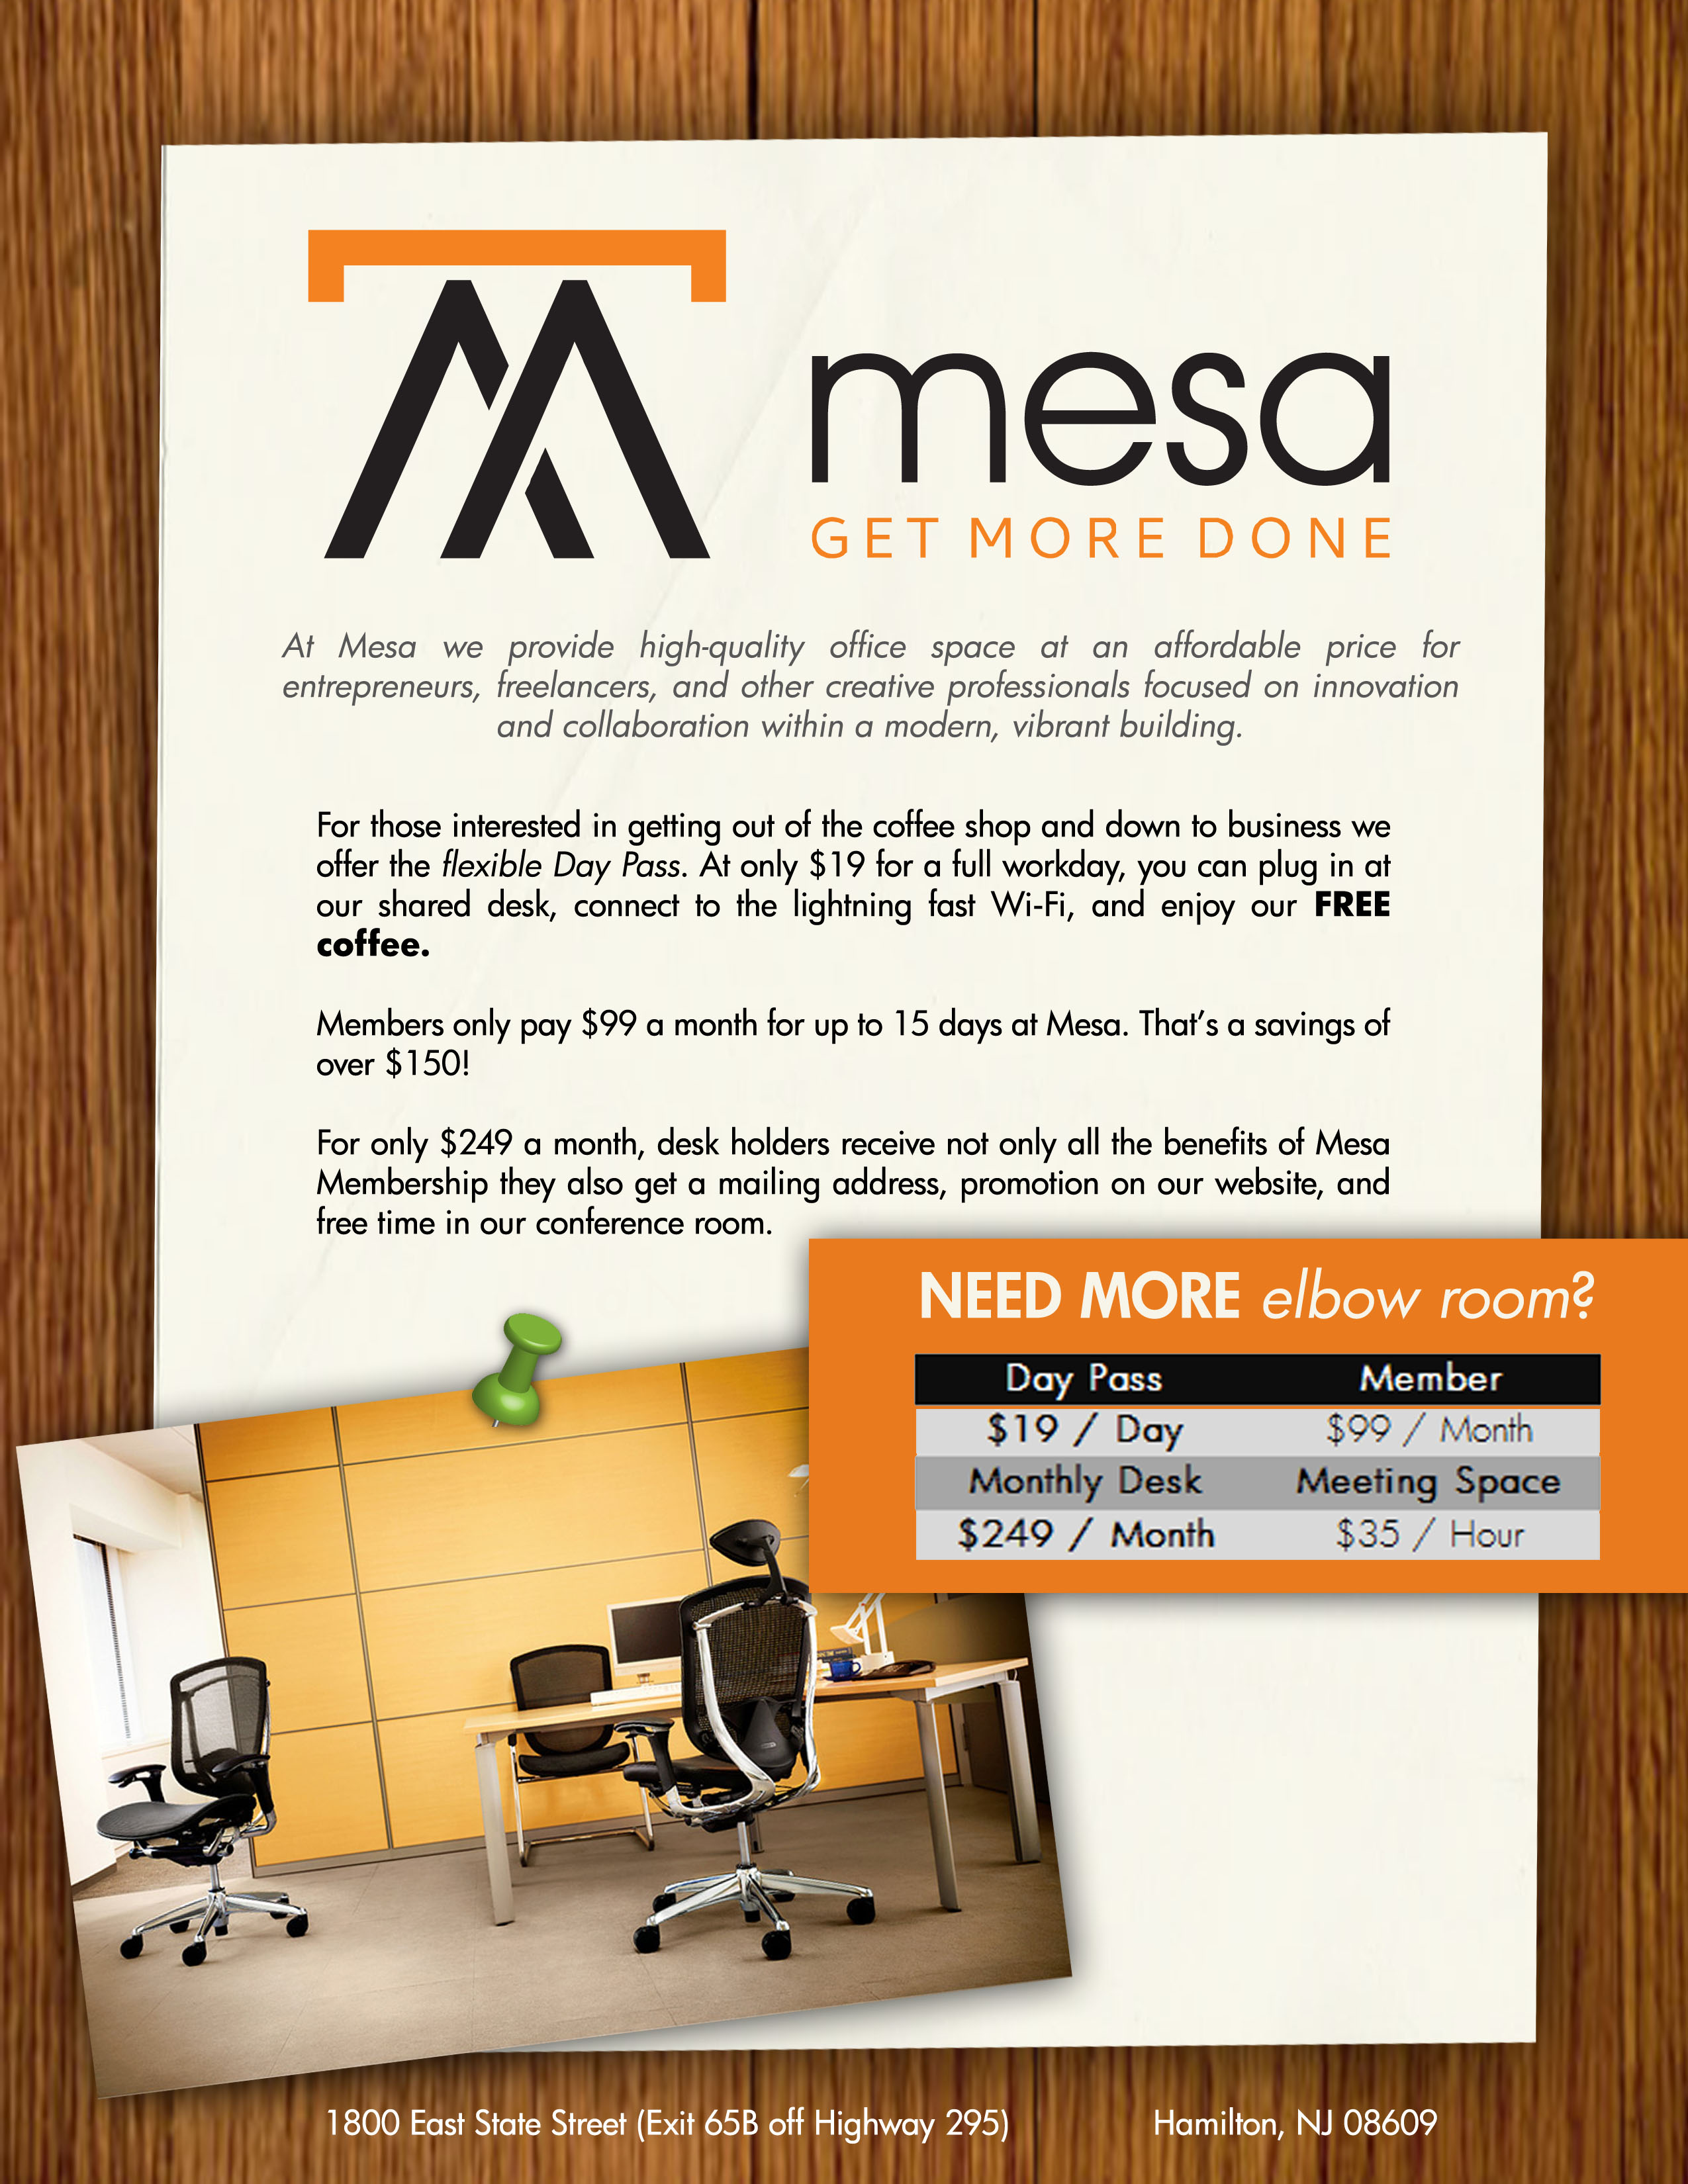 Custom Design by Lama Creative - Entry No. 40 in the Custom Design Contest Unique Custom Design Wanted for Mesa.